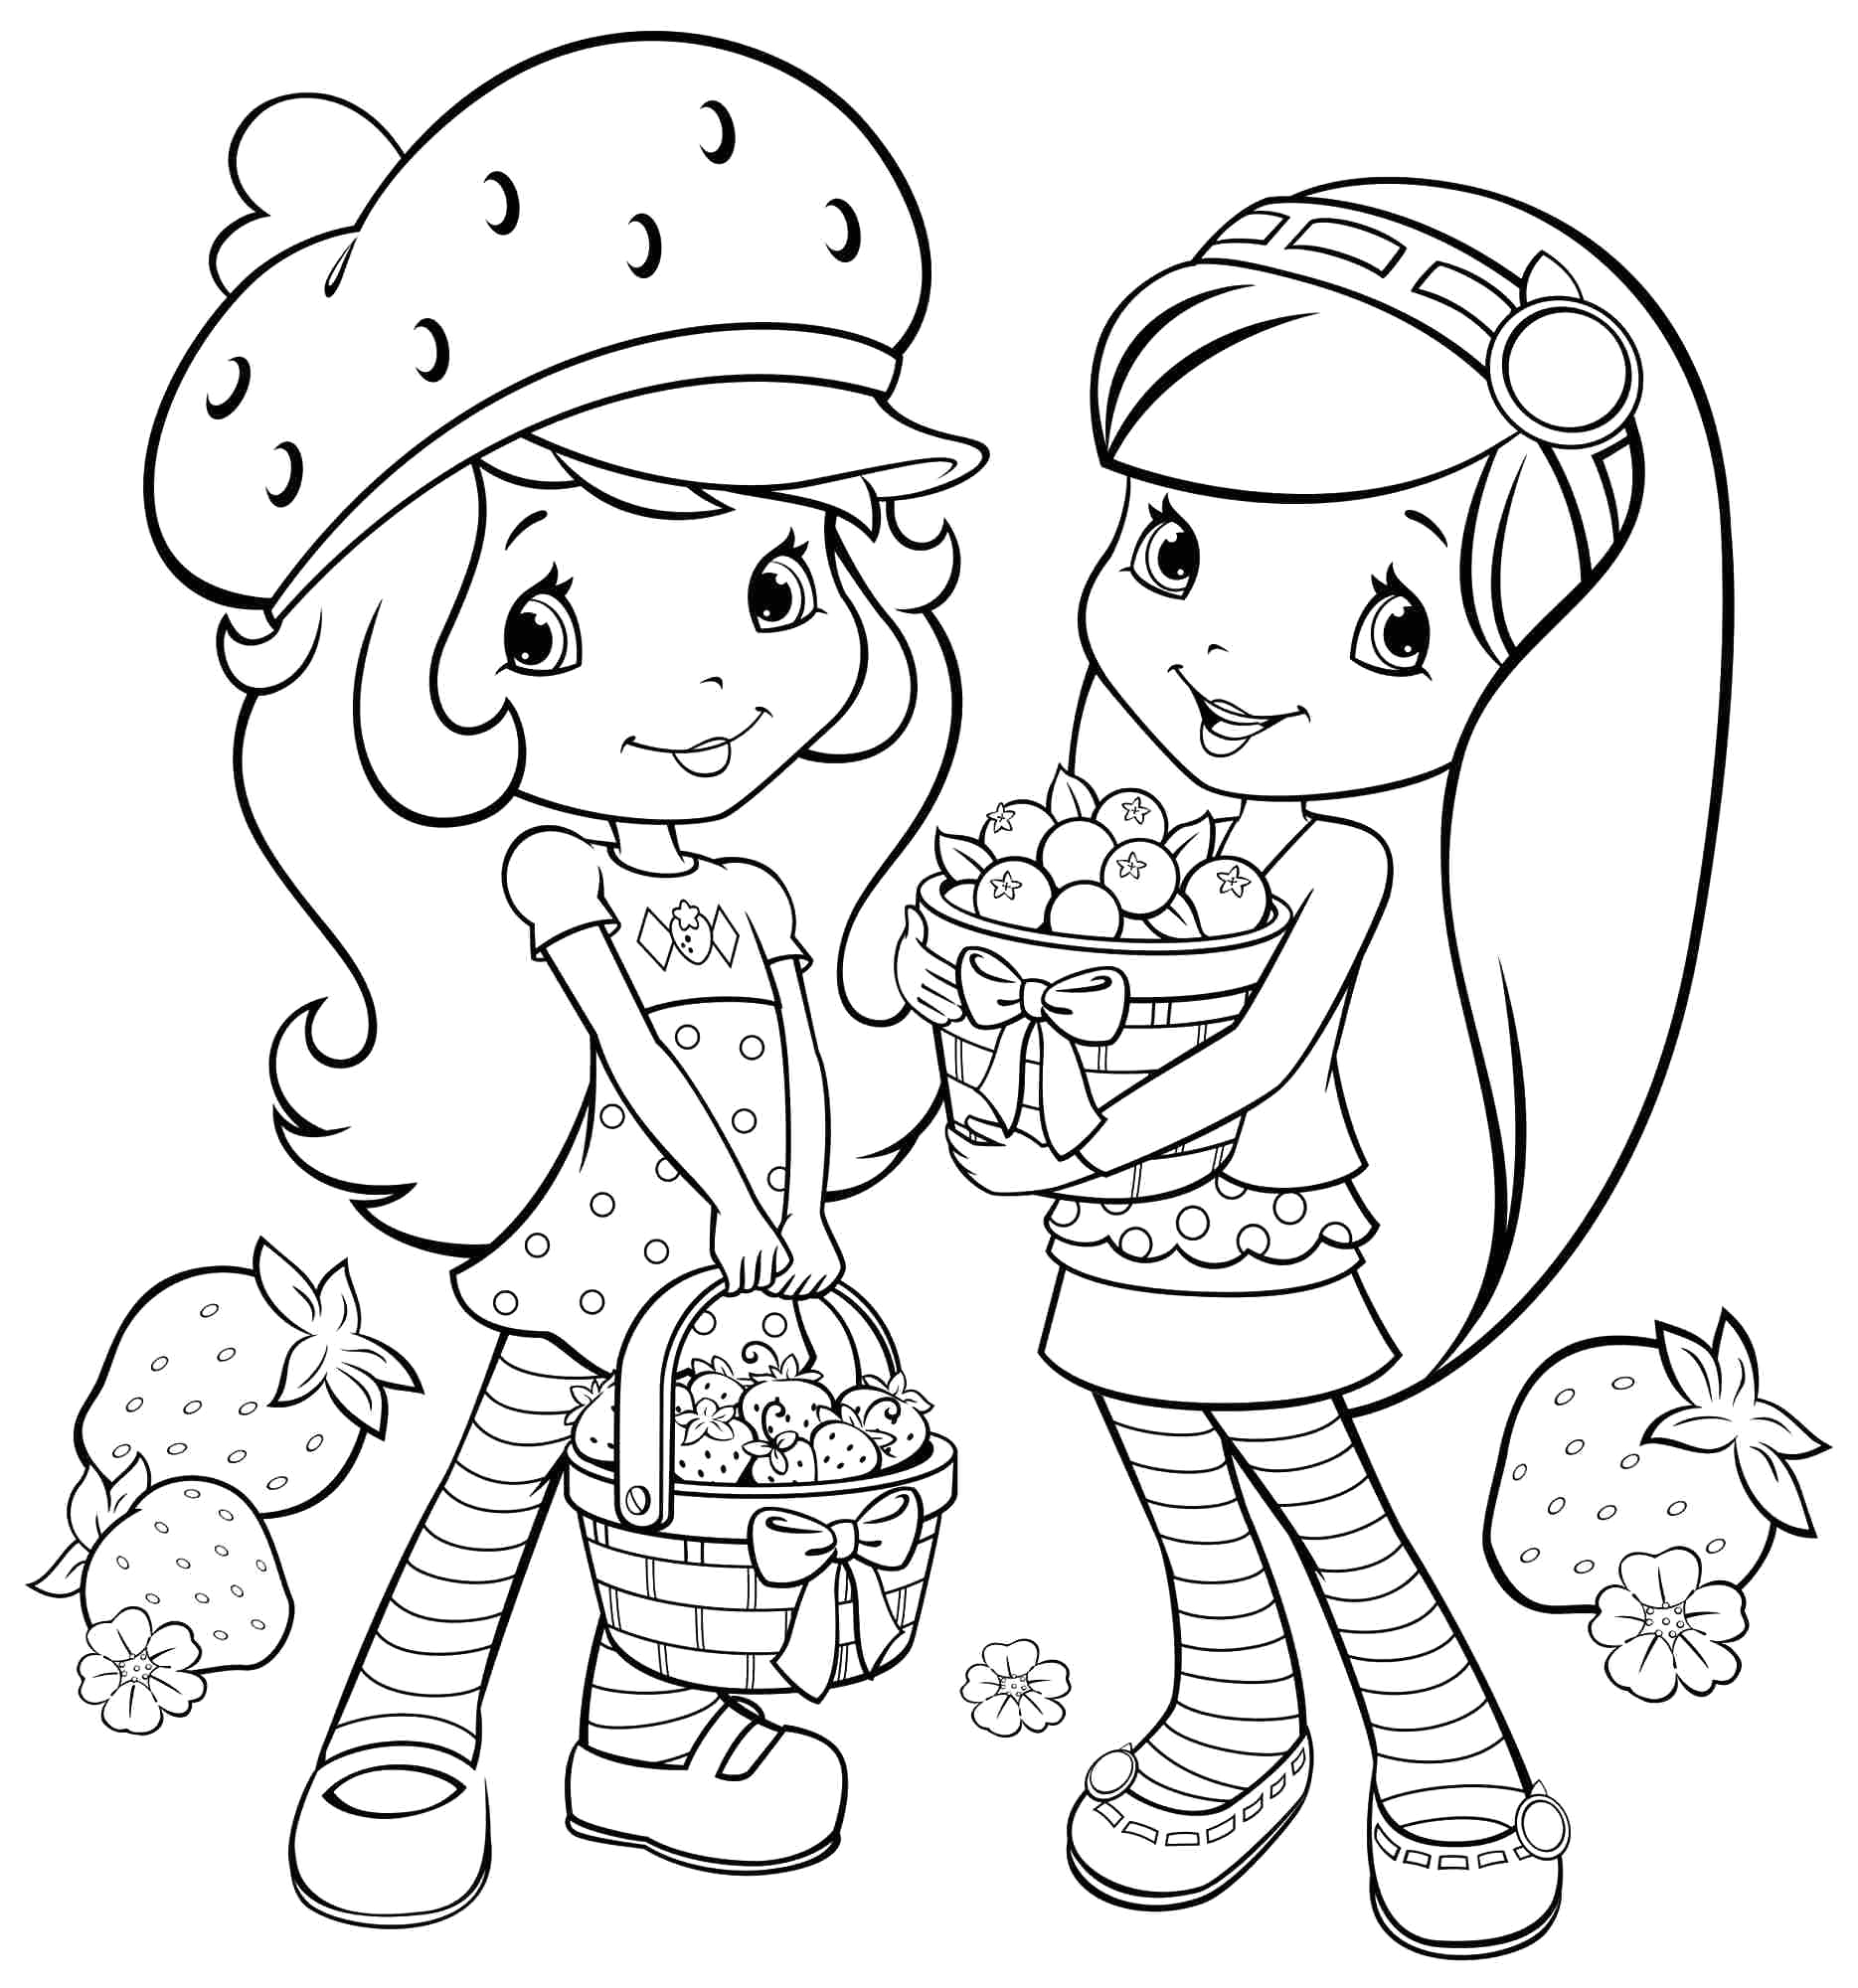 Strawberry Shortcake and Her Friends Coloring Pages Strawberry Shortcake Drawing at Getdrawings